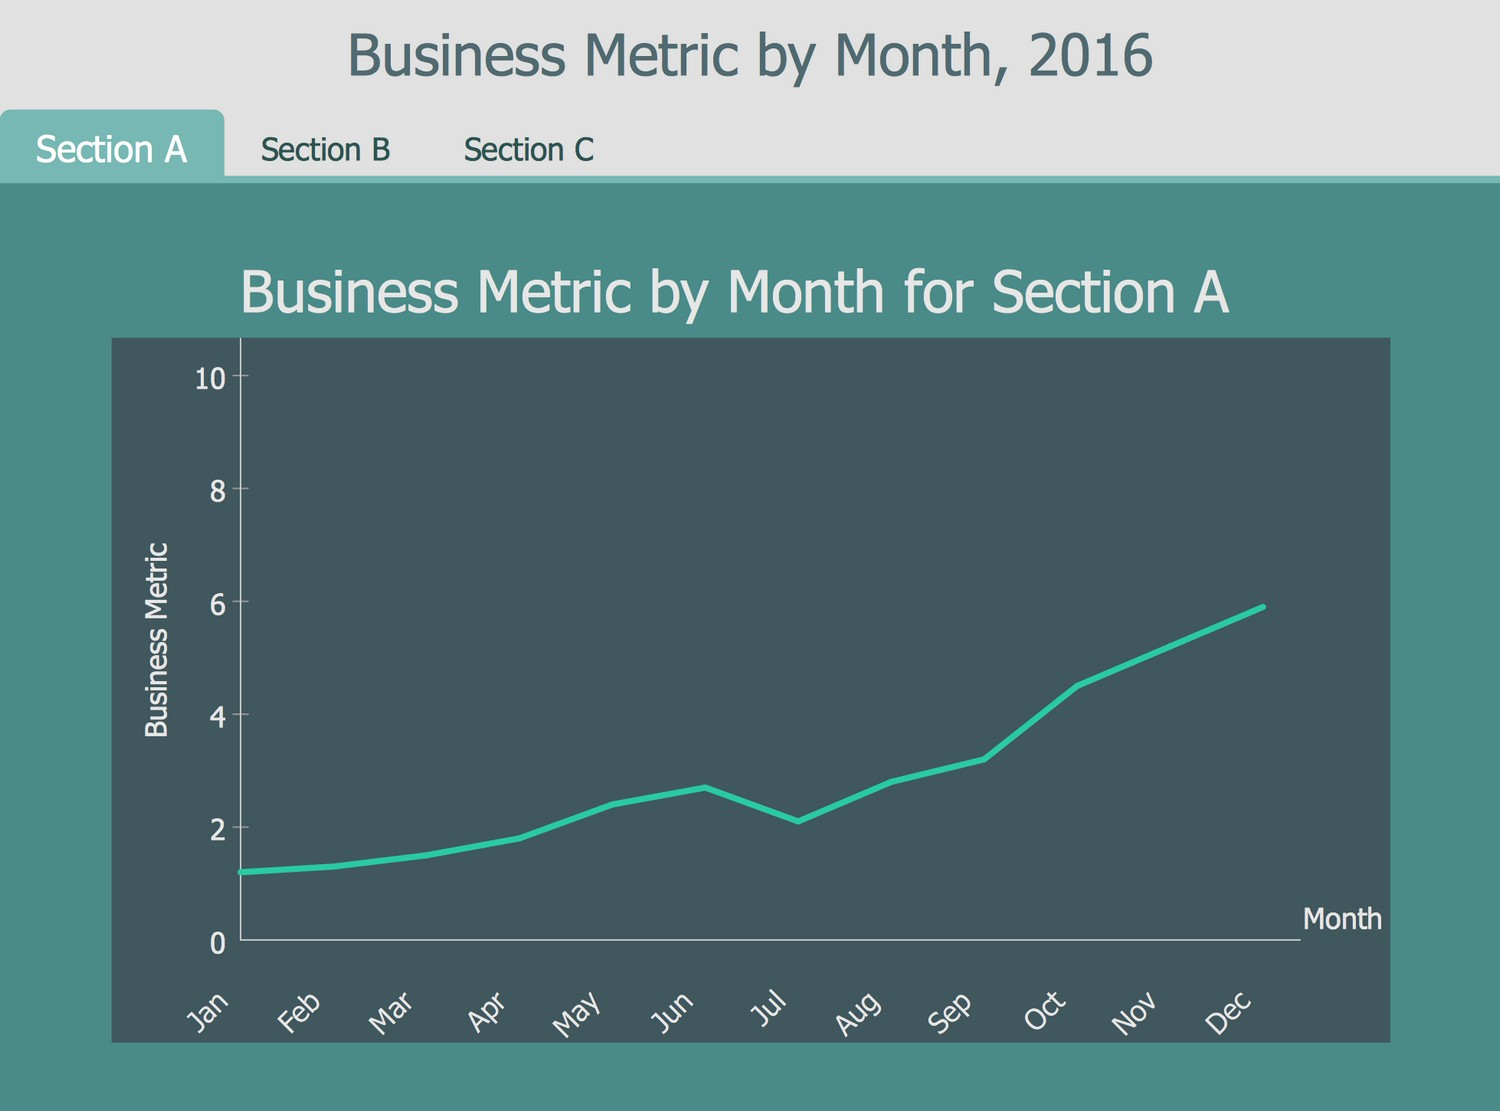 Business Intelligence Dashboard Template - Business Metric by Month, 2016 for 3 Sections